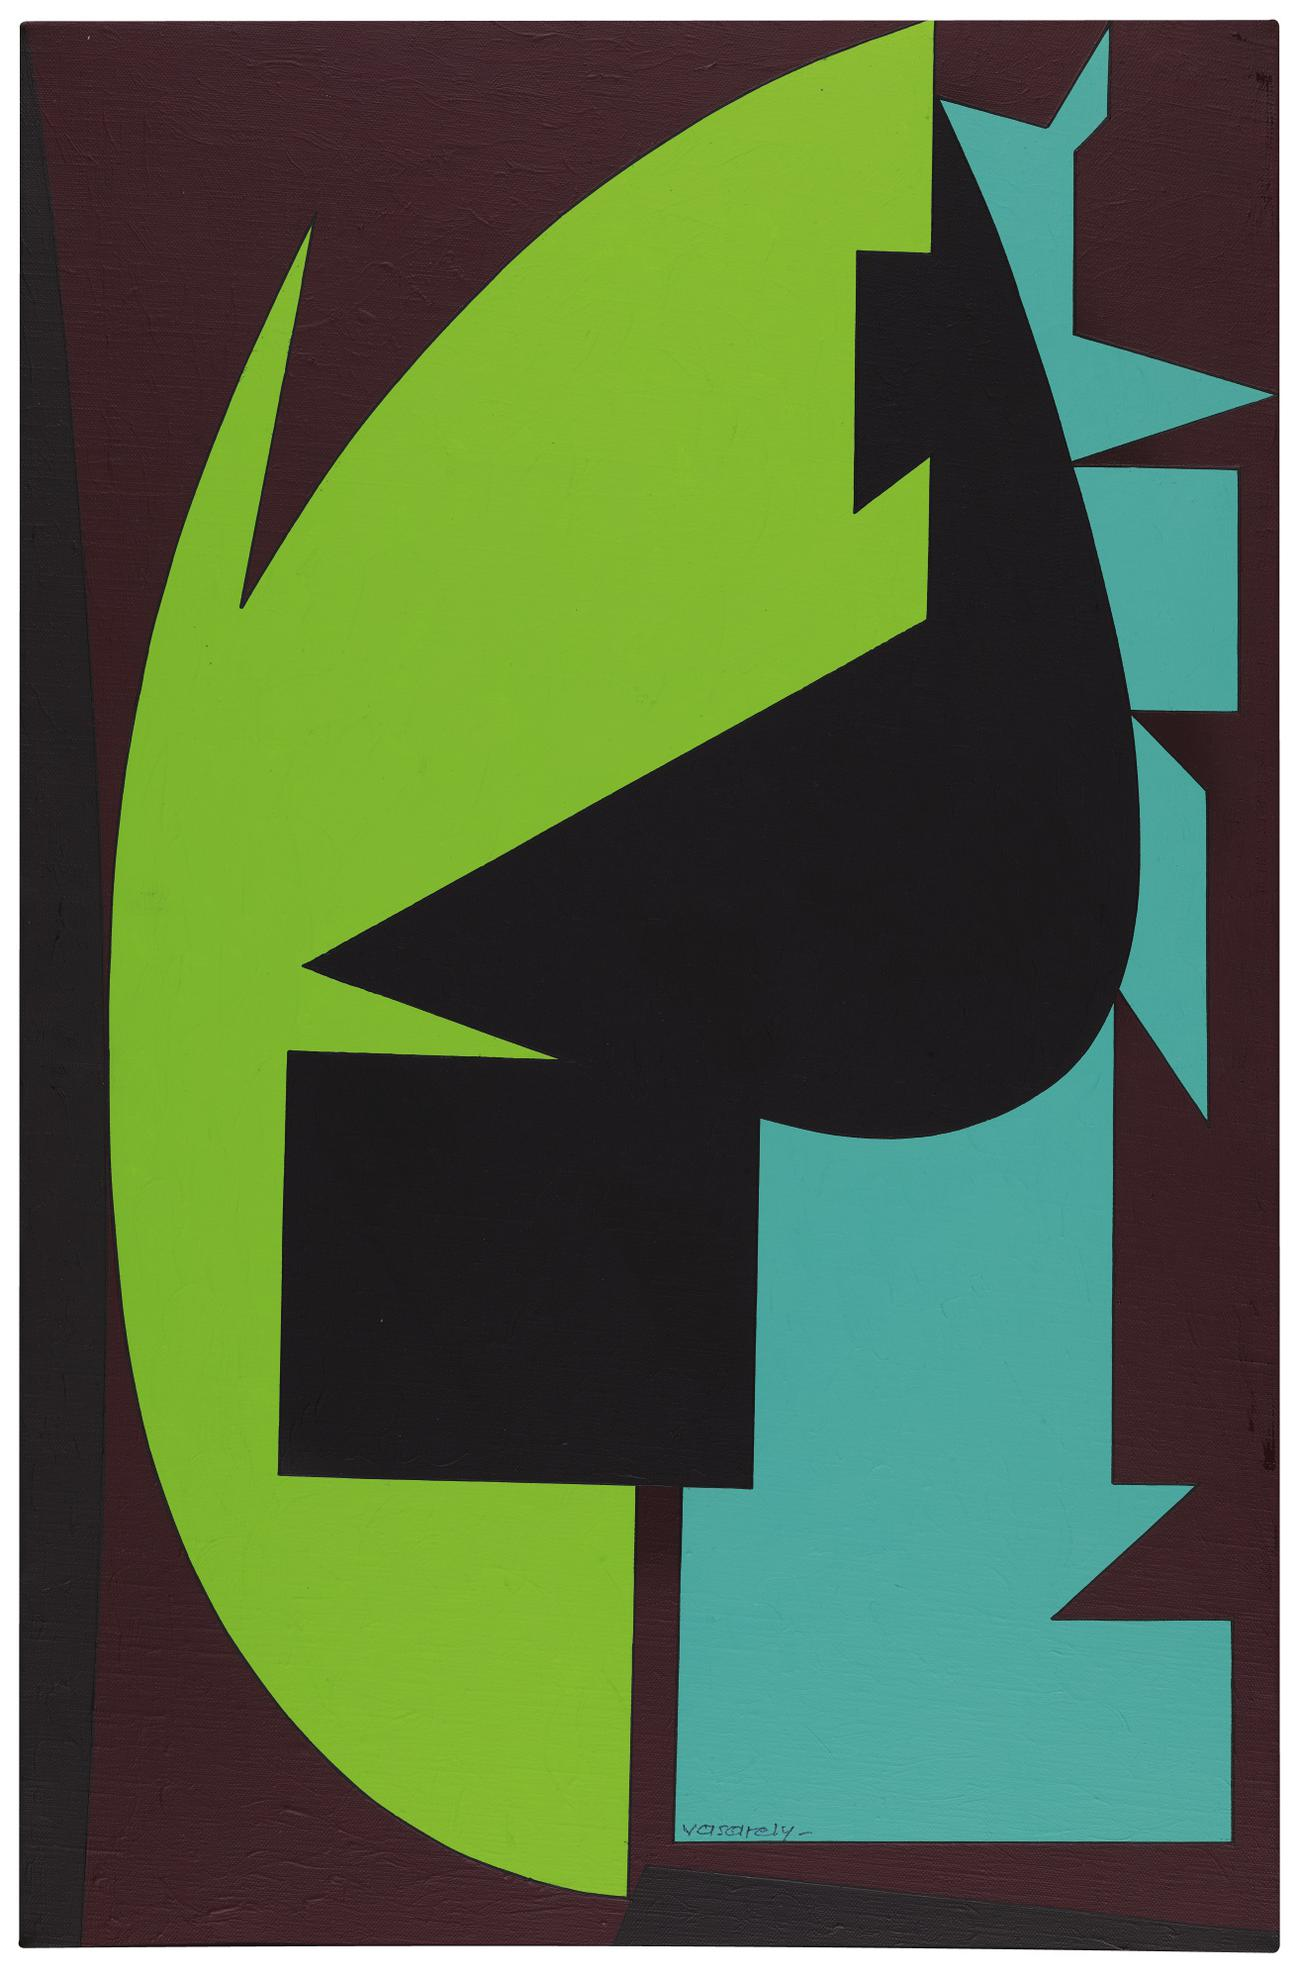 Victor Vasarely-Ypoly-1989